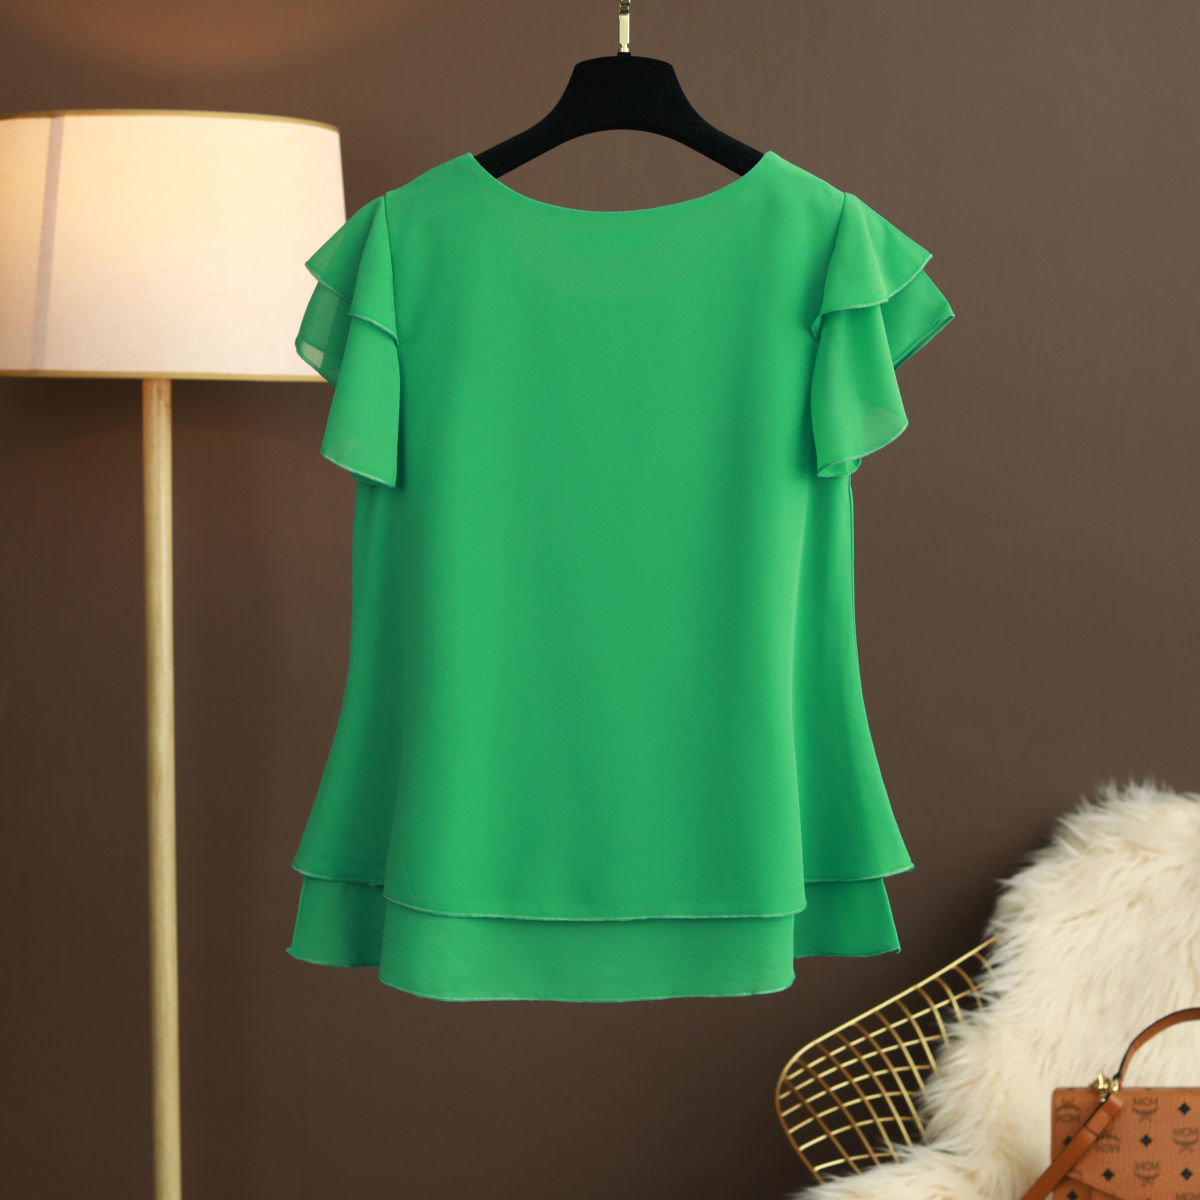 New Summer Women Blouse Loose O-Neck Chiffon Shirt Female Short Sleeve Blouse Plus Size 6XL Shirts womens tops and blouses Top